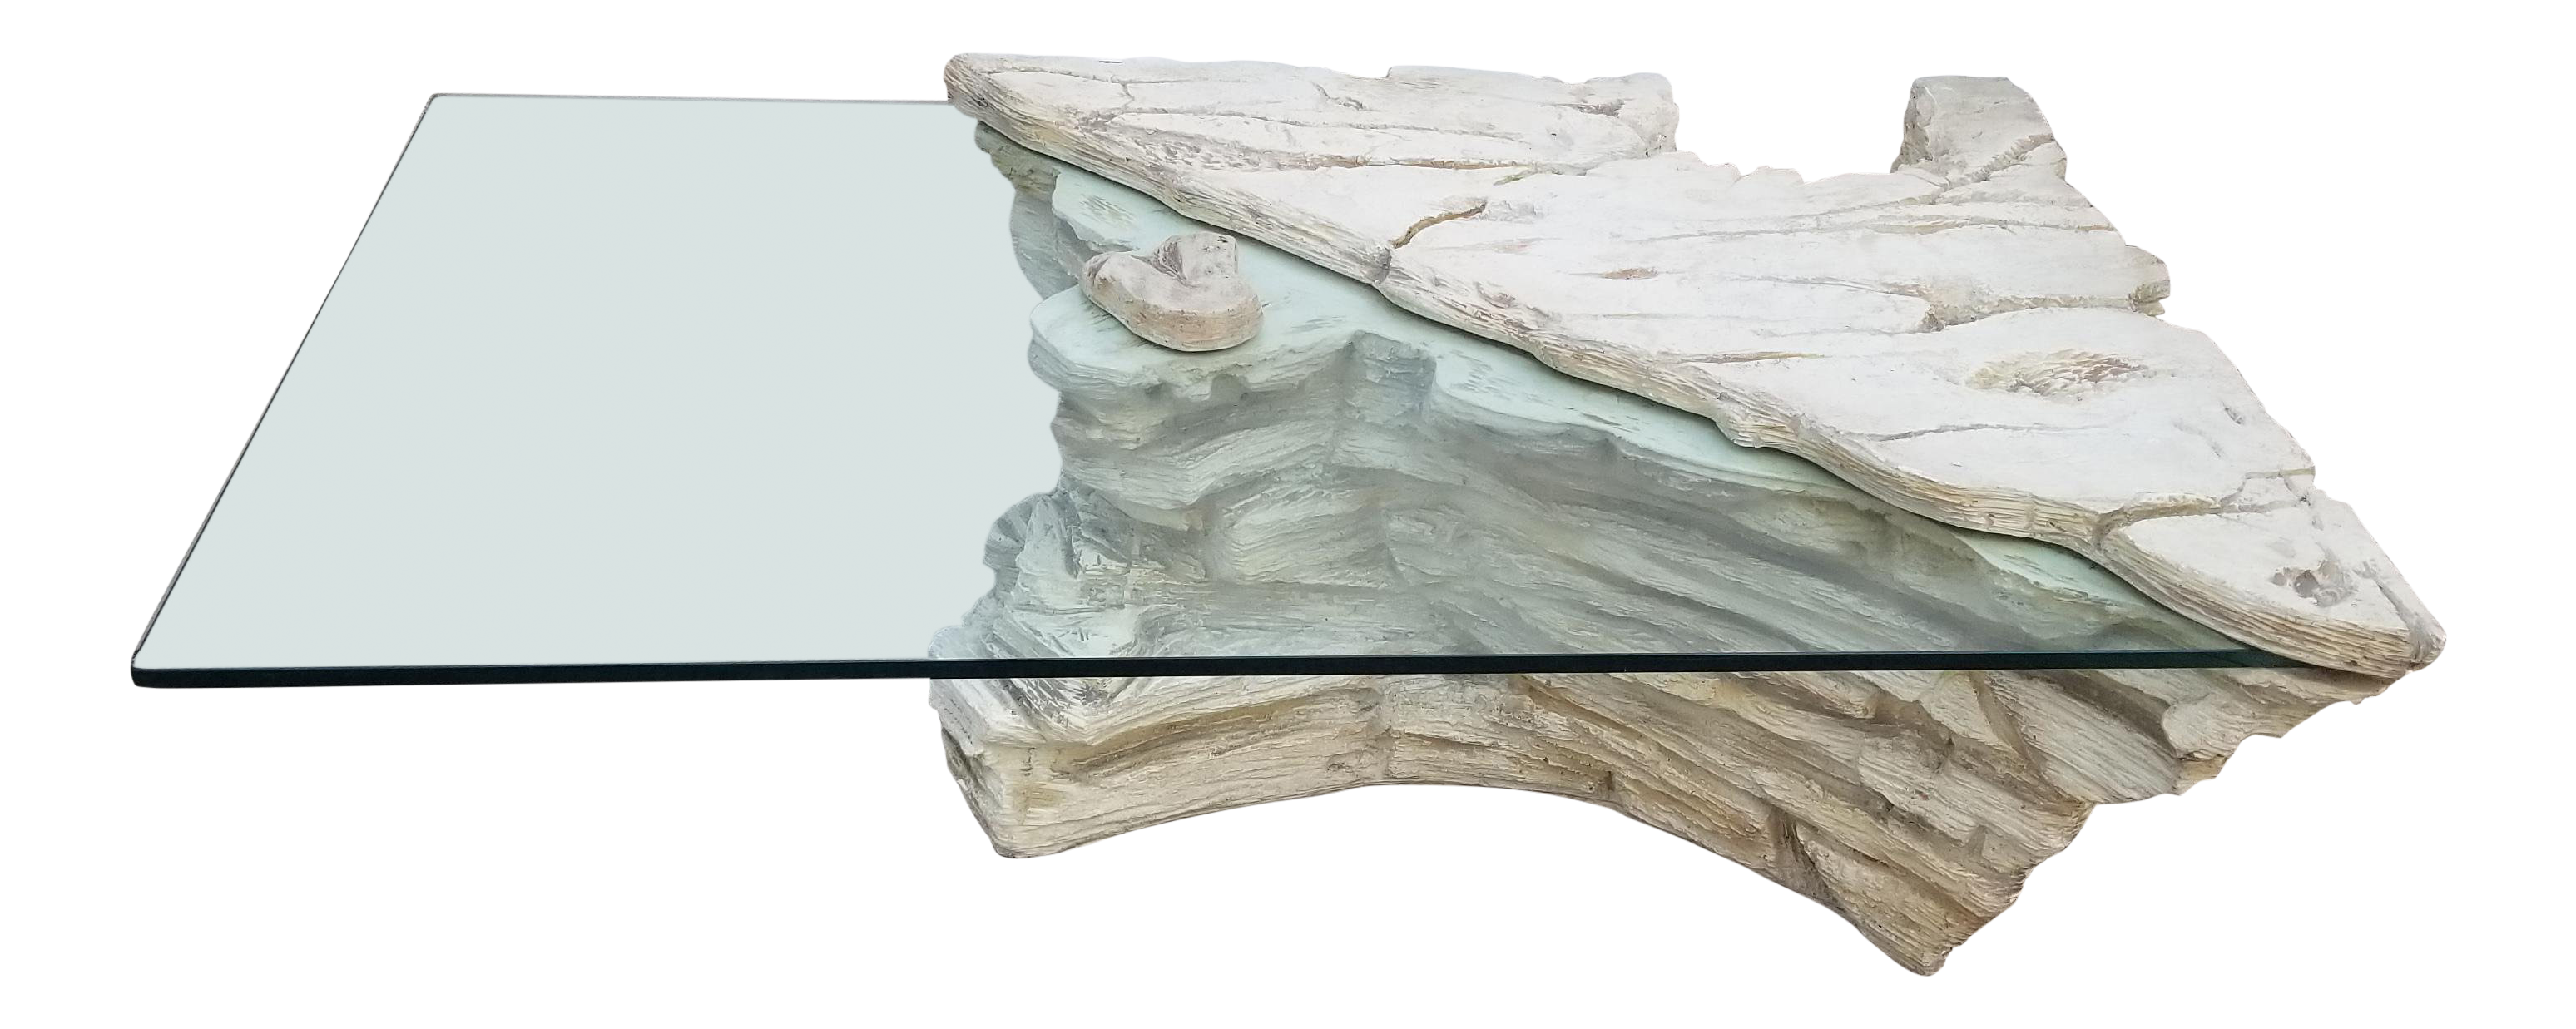 sirmos style plaster rock quarry coffee table chairish accent large console cabinet placemats colored glass farm bath beyond gift registry black nest tables ikea front door